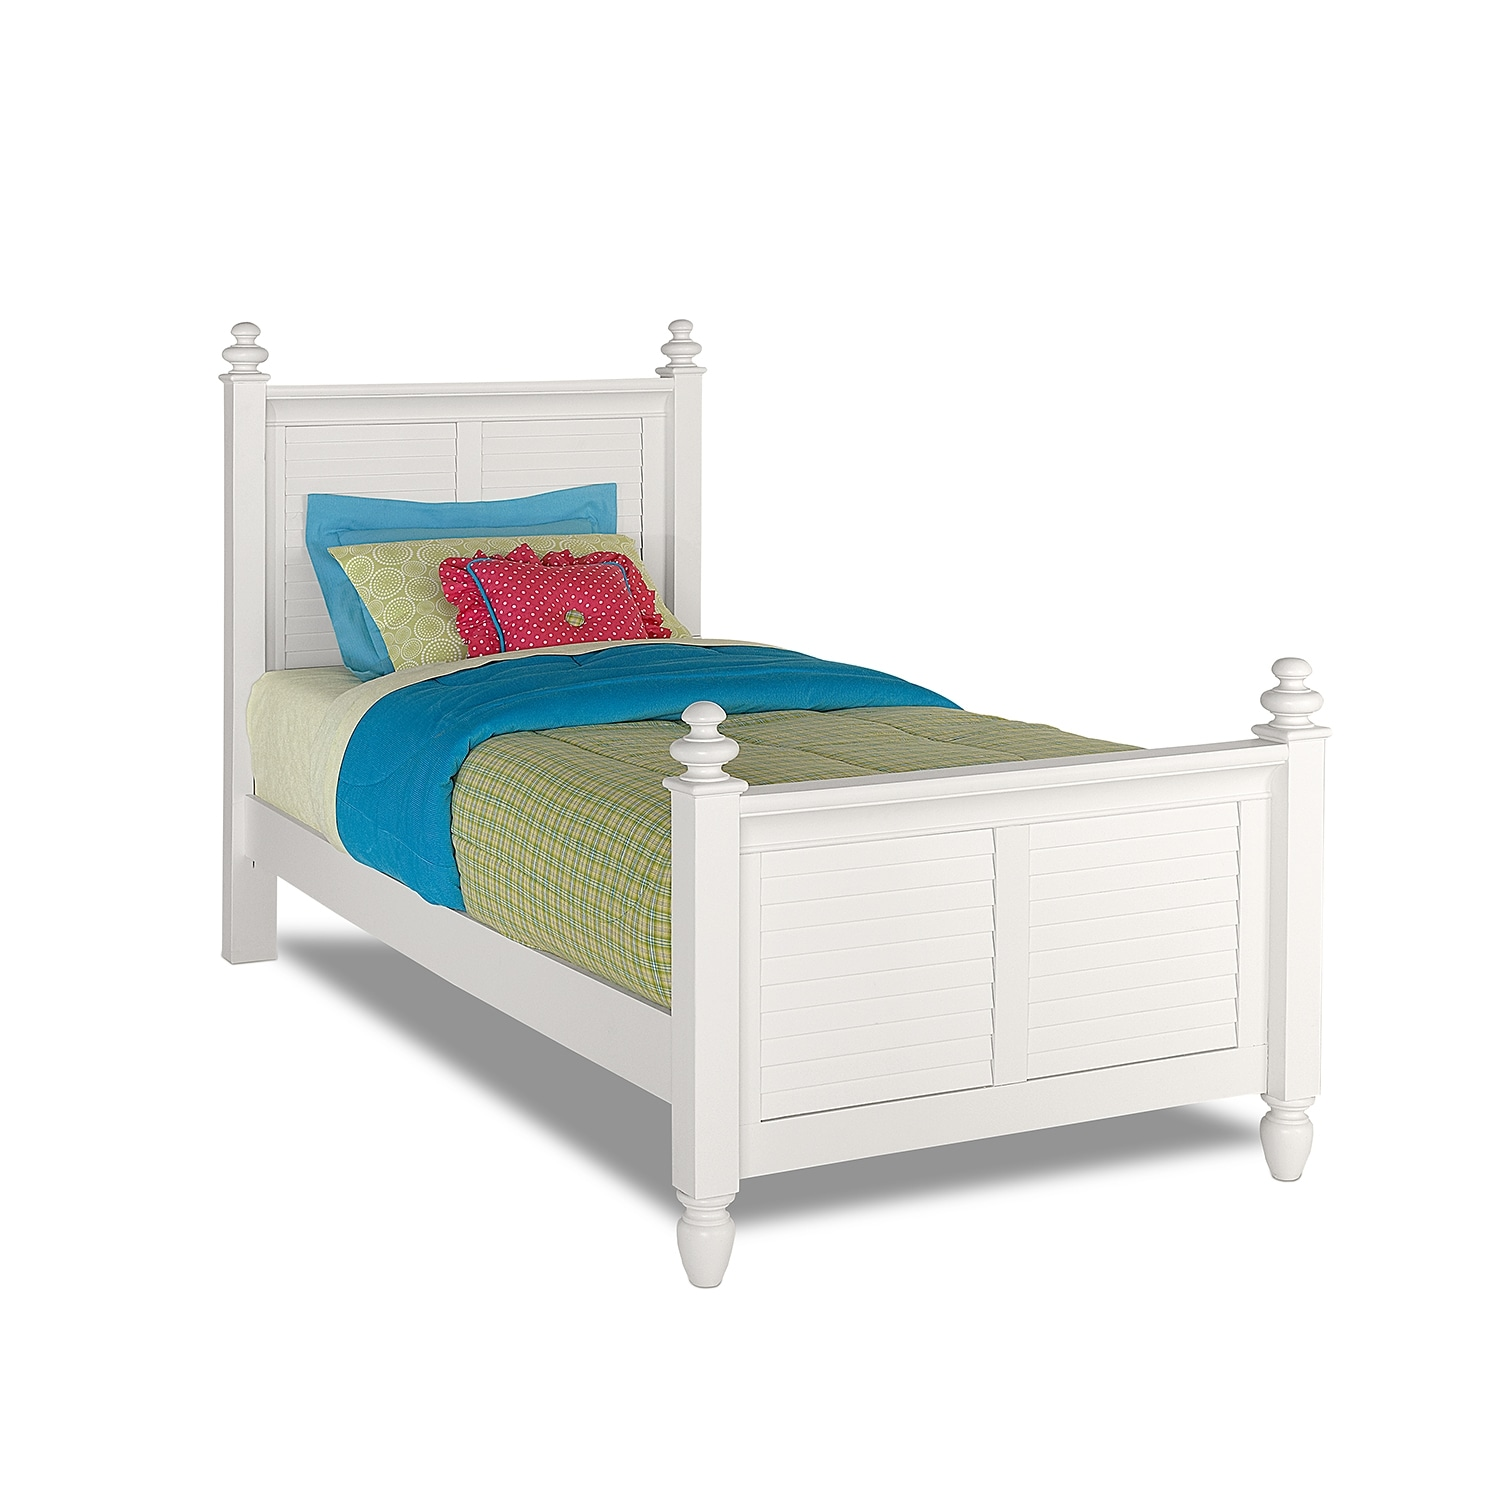 Seaside Twin Bed White American Signature Furniture